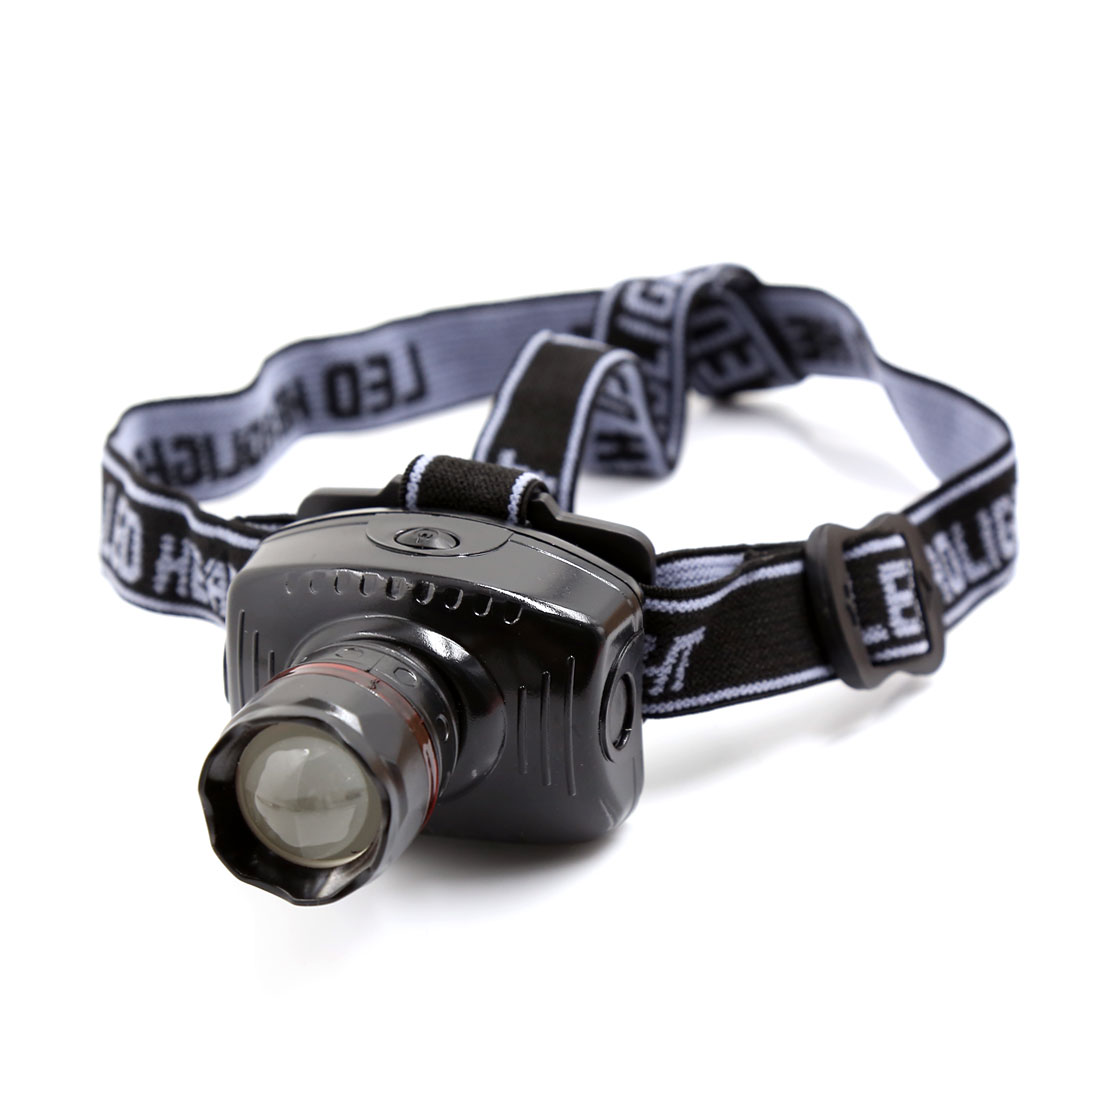 Elastic Strap Focus Adjustable White SMD LED Flashlight Torch Headlight 3W